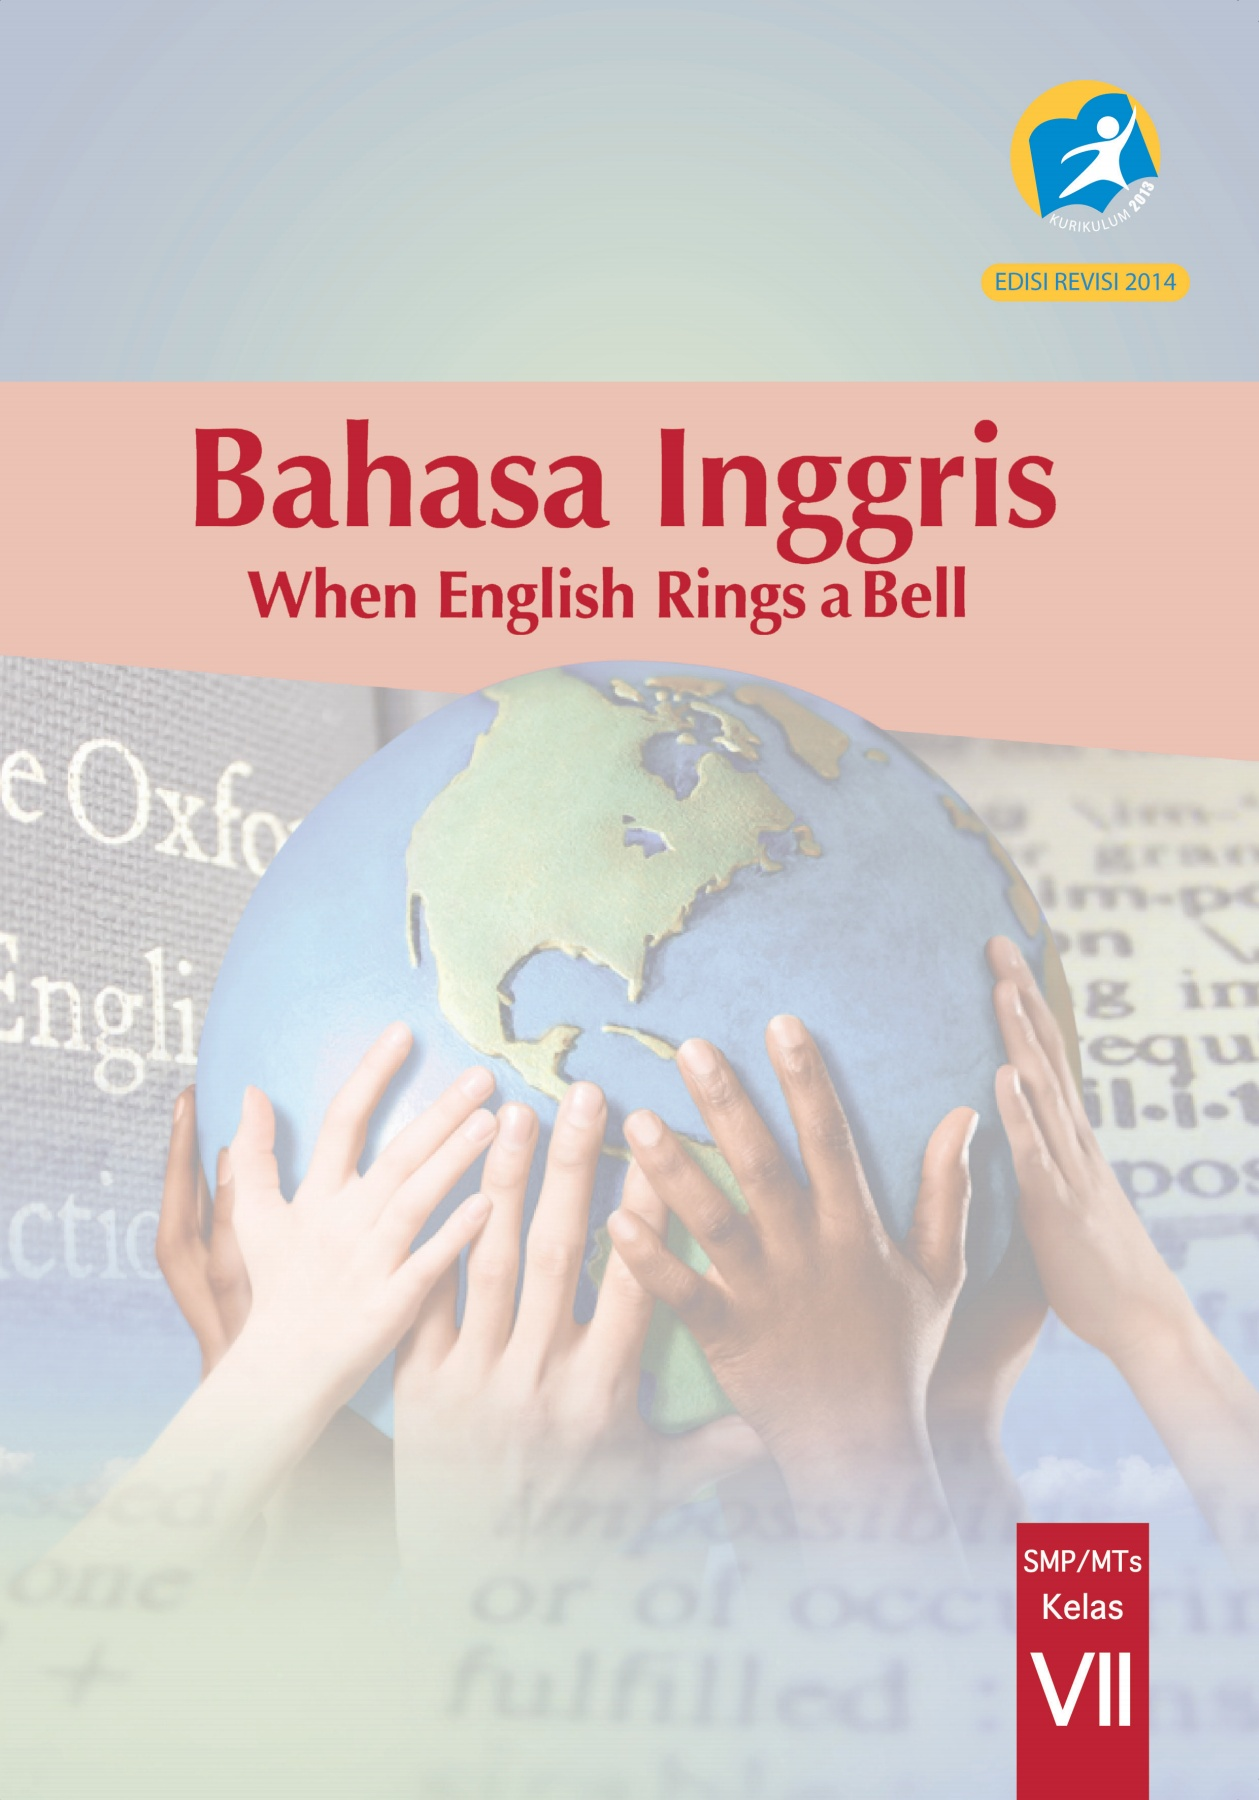 Bahasa Inggris 1-50 : bahasa, inggris, Inggris, Kelas, 7-Flip, EBook, Pages, AnyFlip